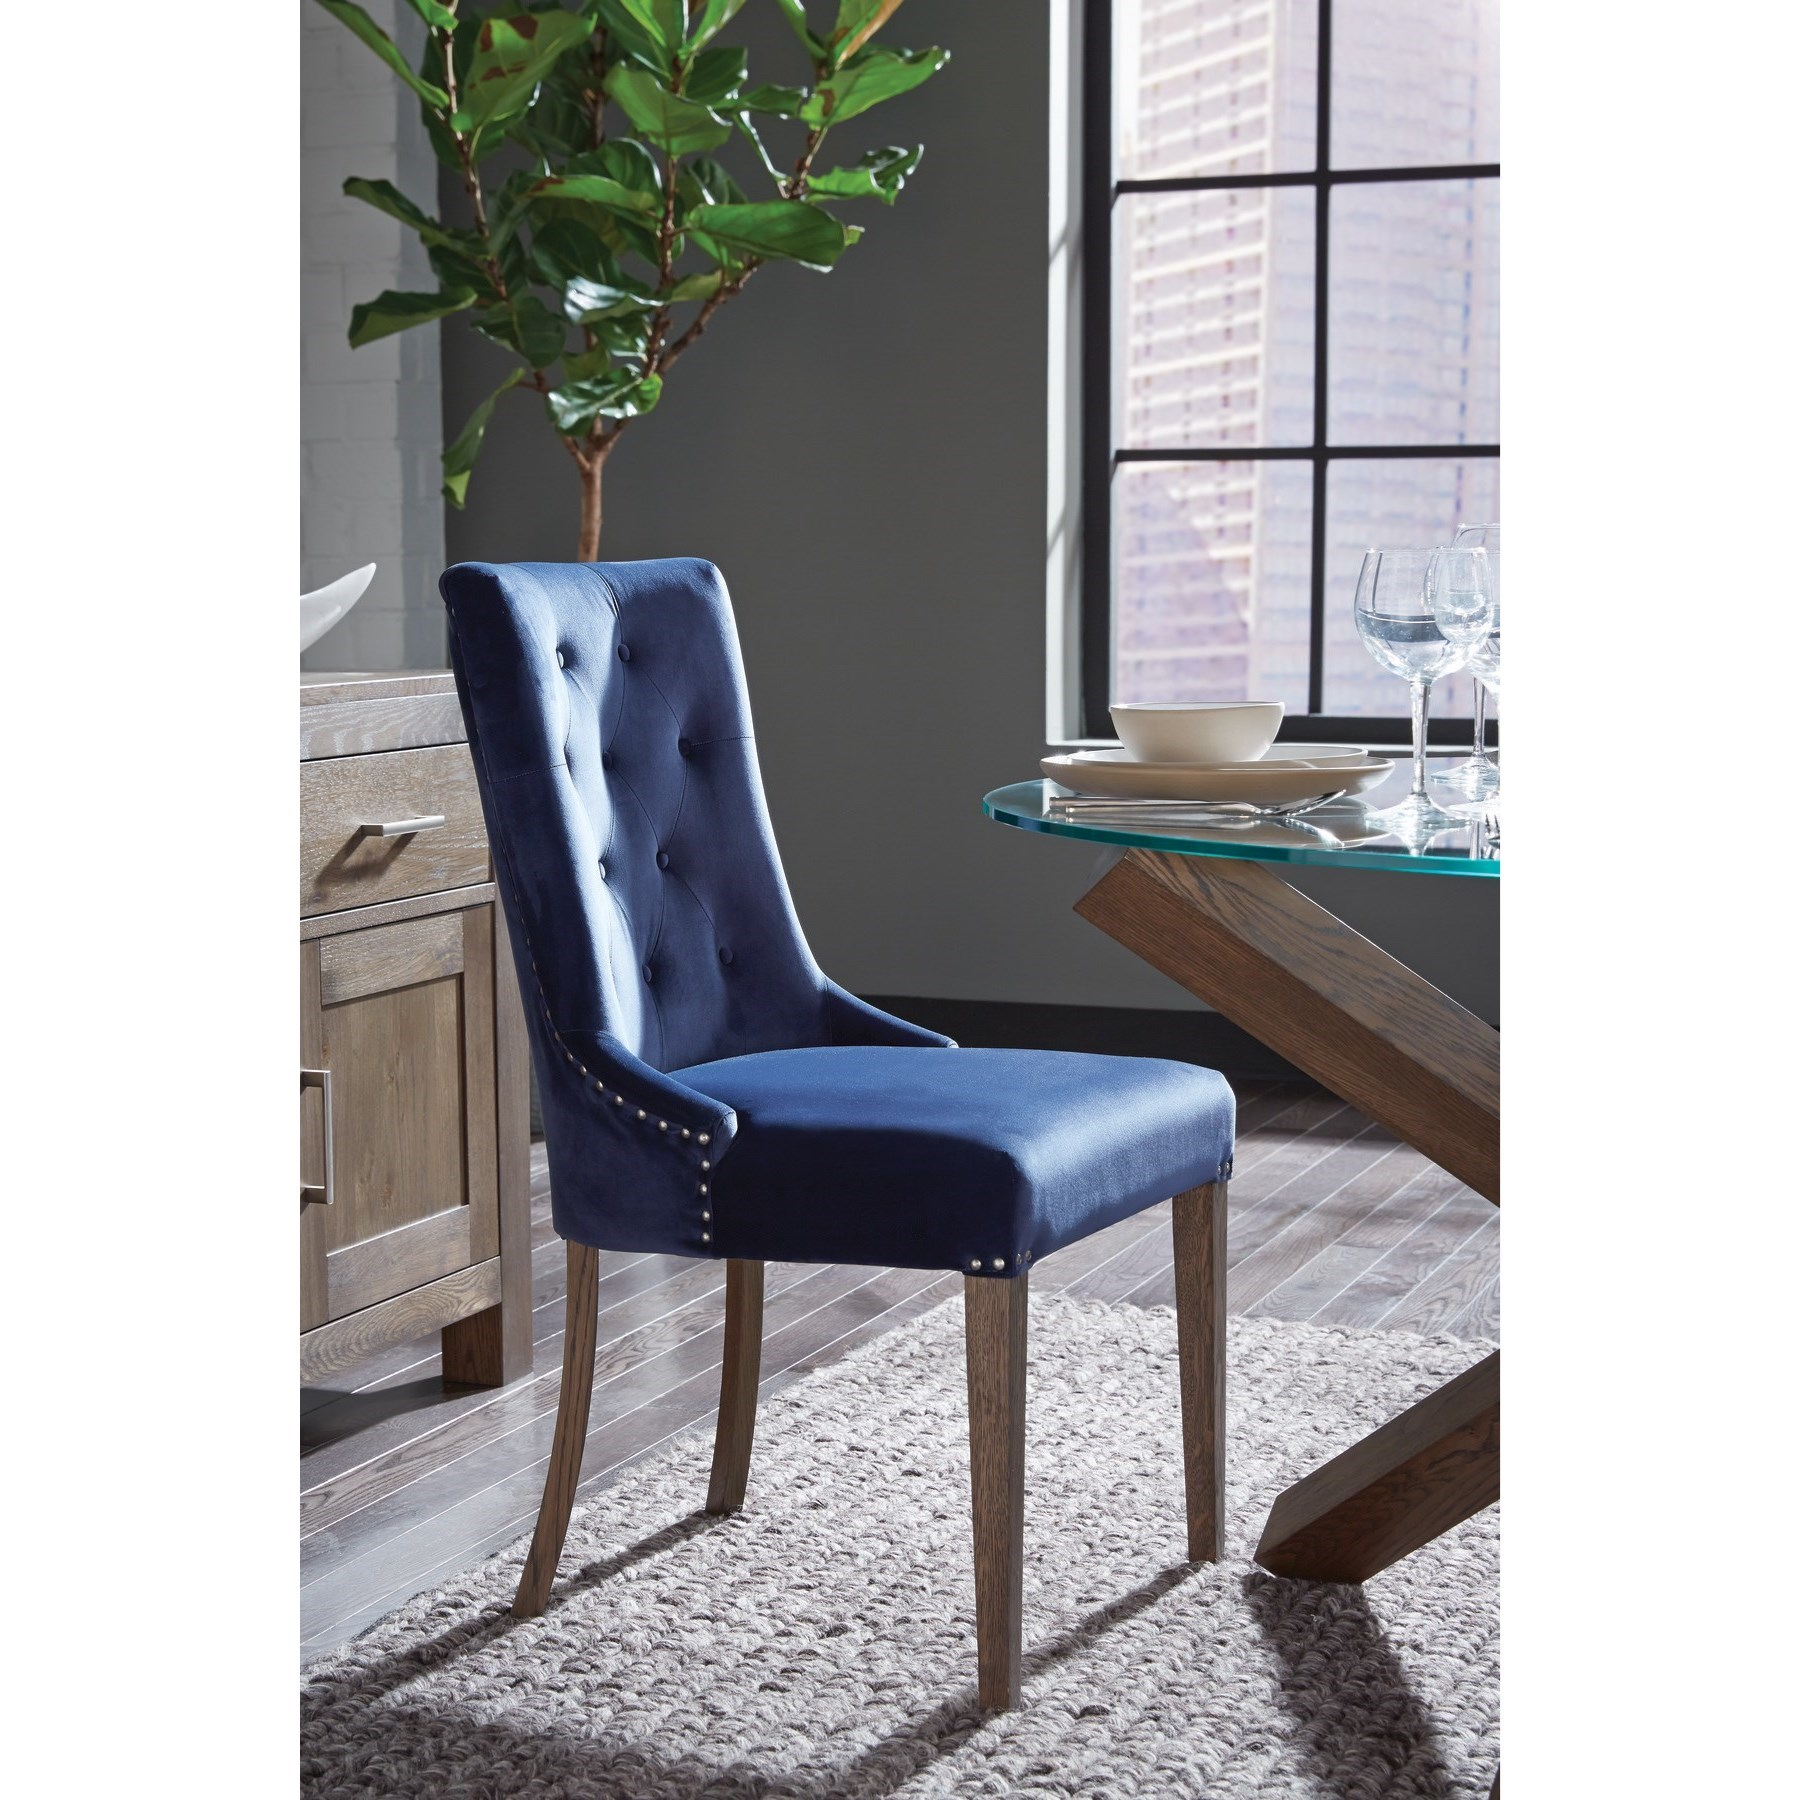 Gardiner-Saylor Side Chair by Palliser at Upper Room Home Furnishings